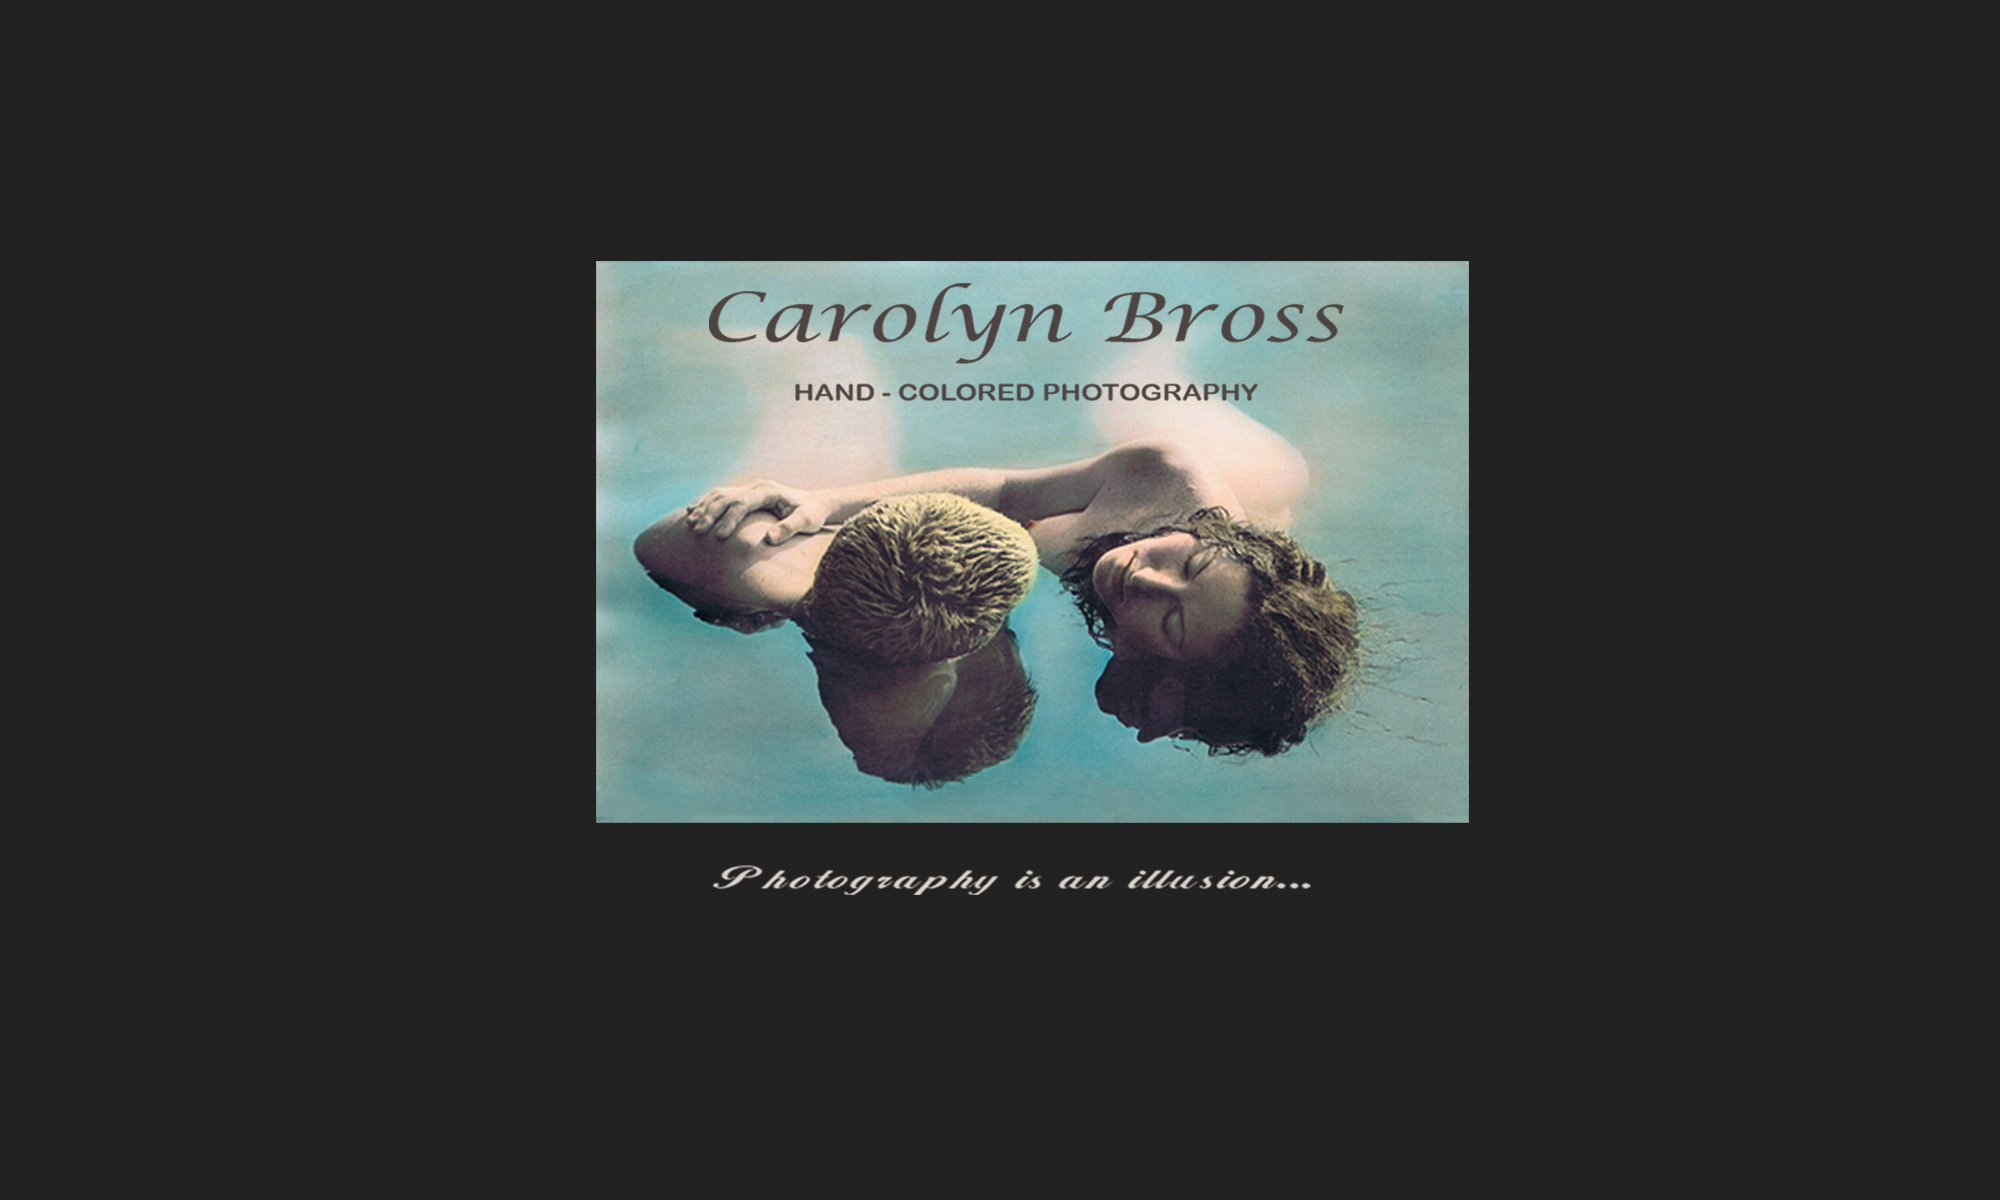 Carolyn Bross Hand-Colored Photography